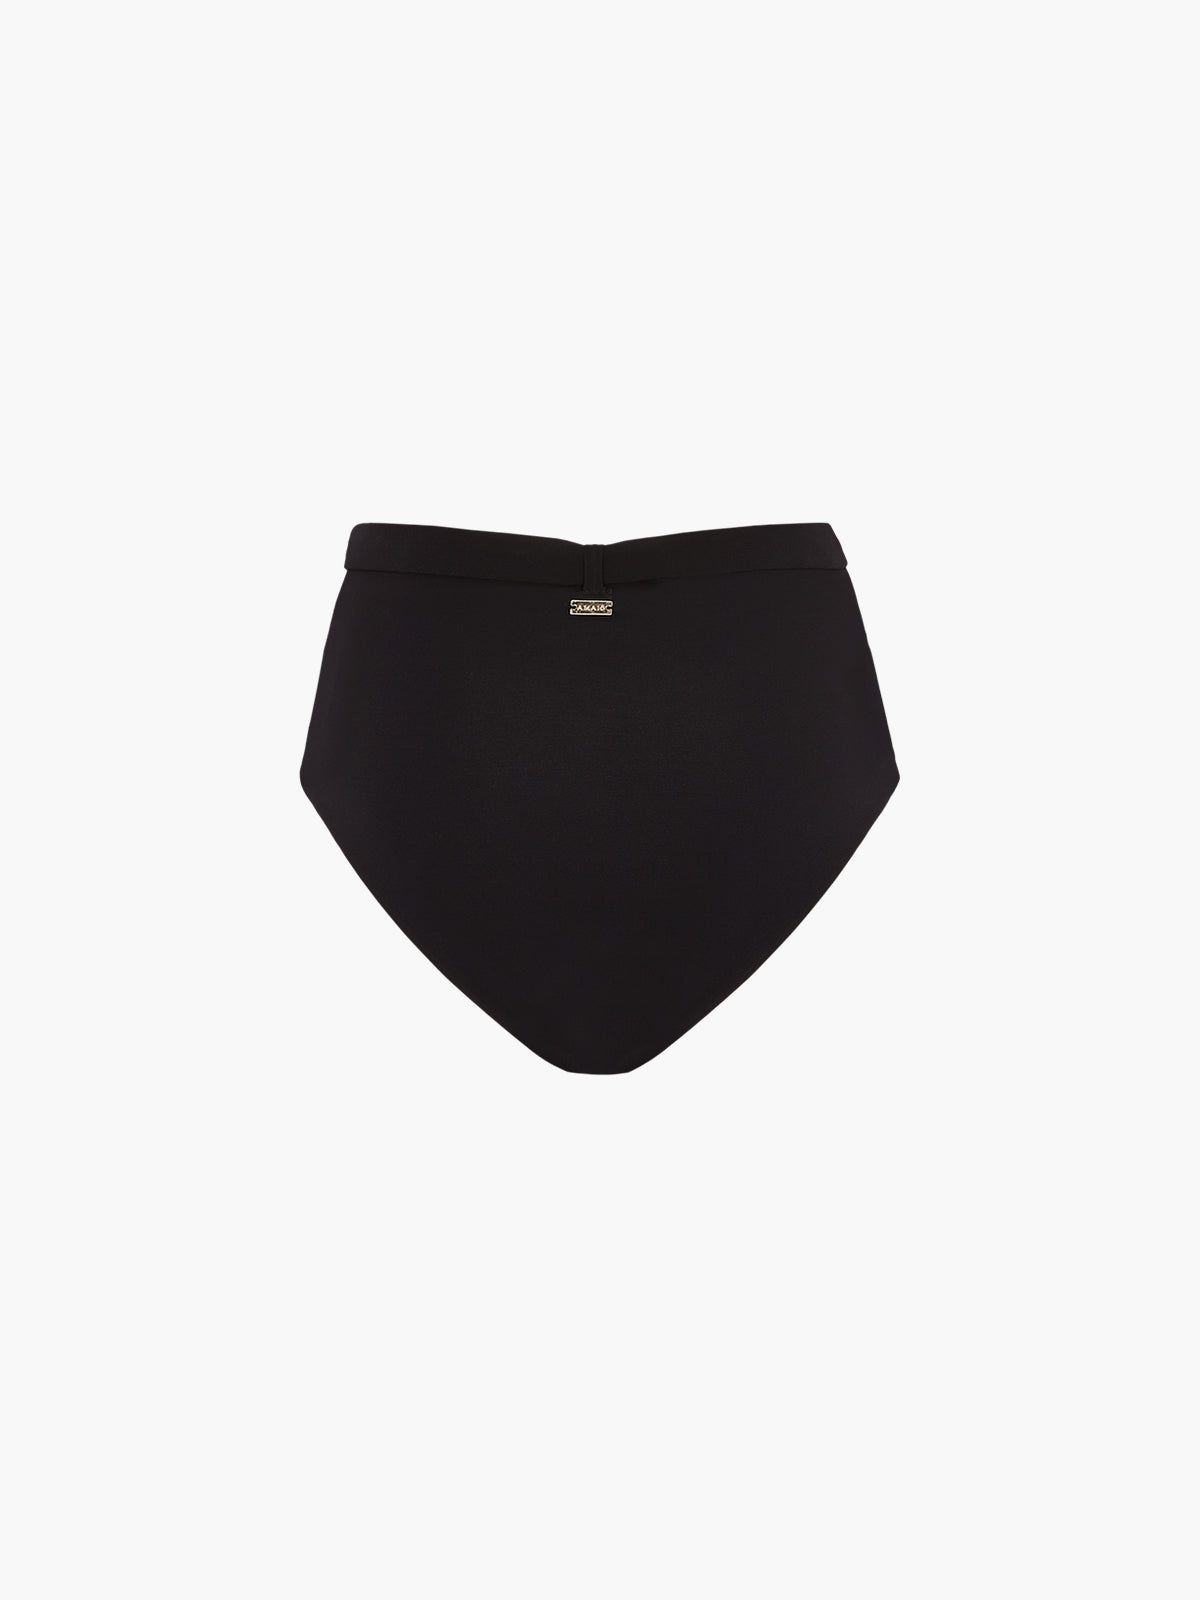 Nantes Bottoms | Black Nantes Bottoms | Black